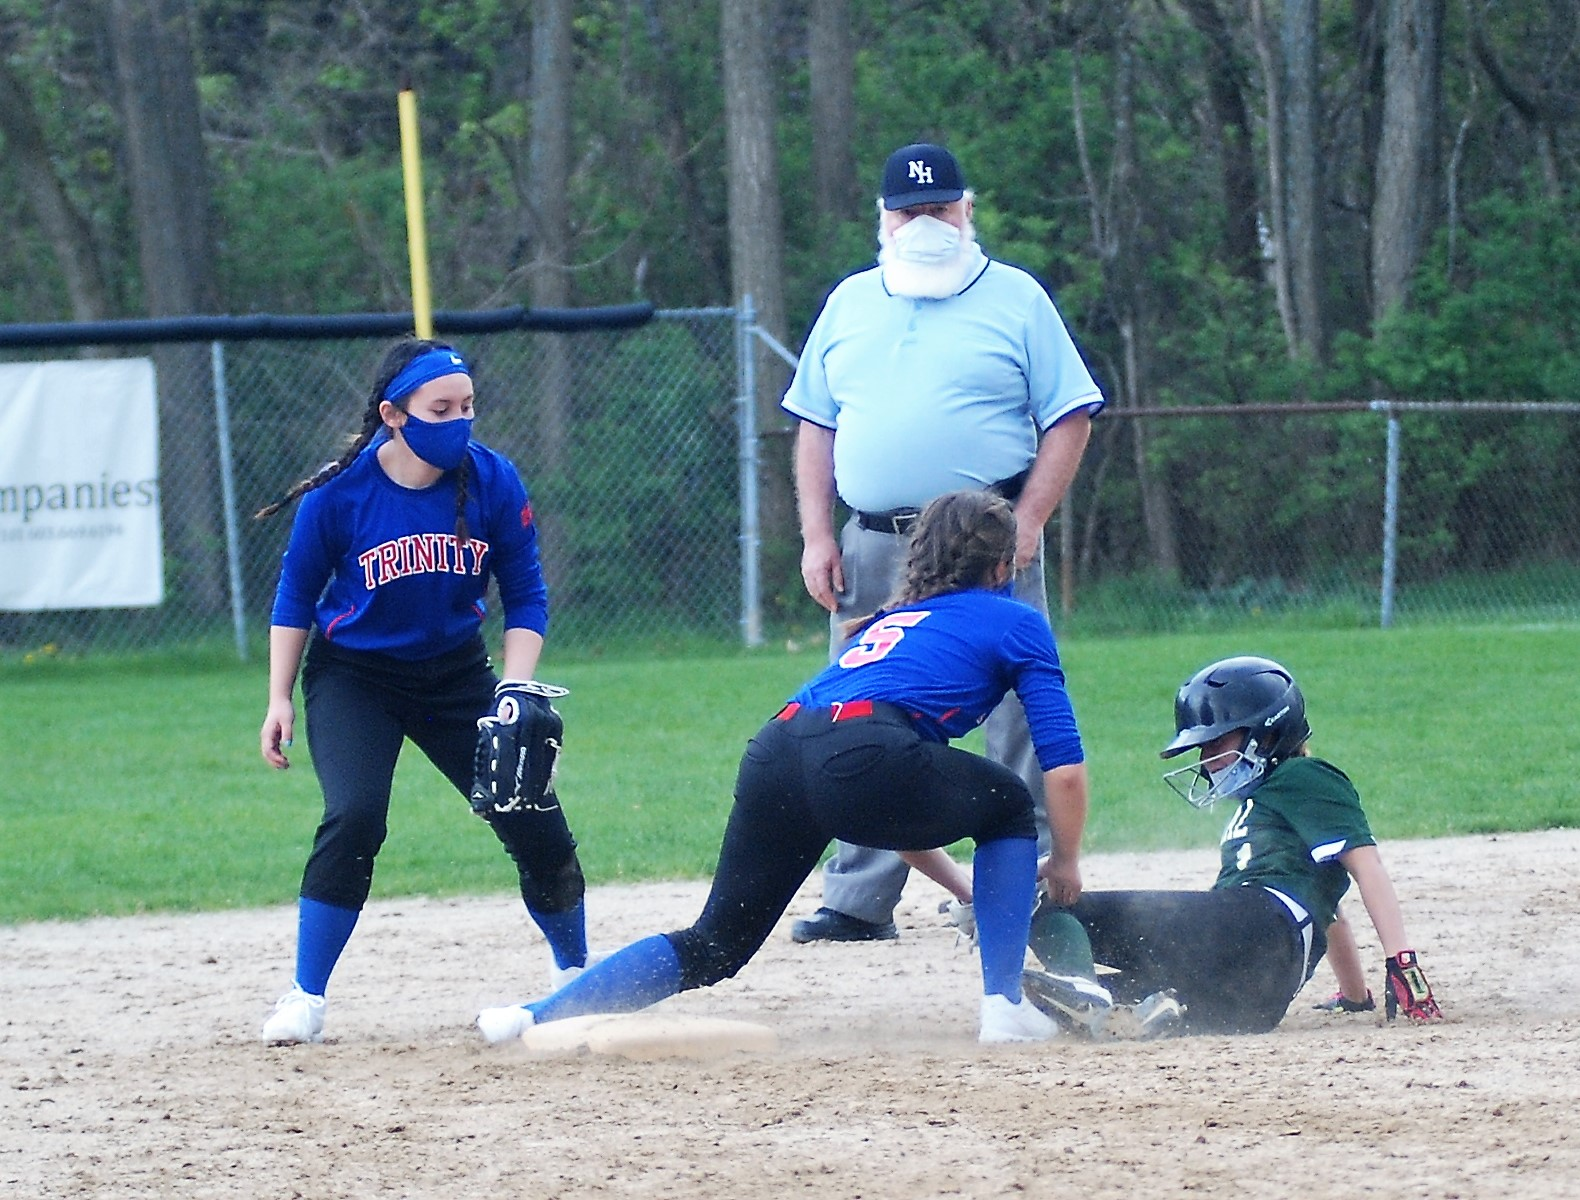 Trinity shortstop Emma Service tags Central's Catherine Jones for the out.